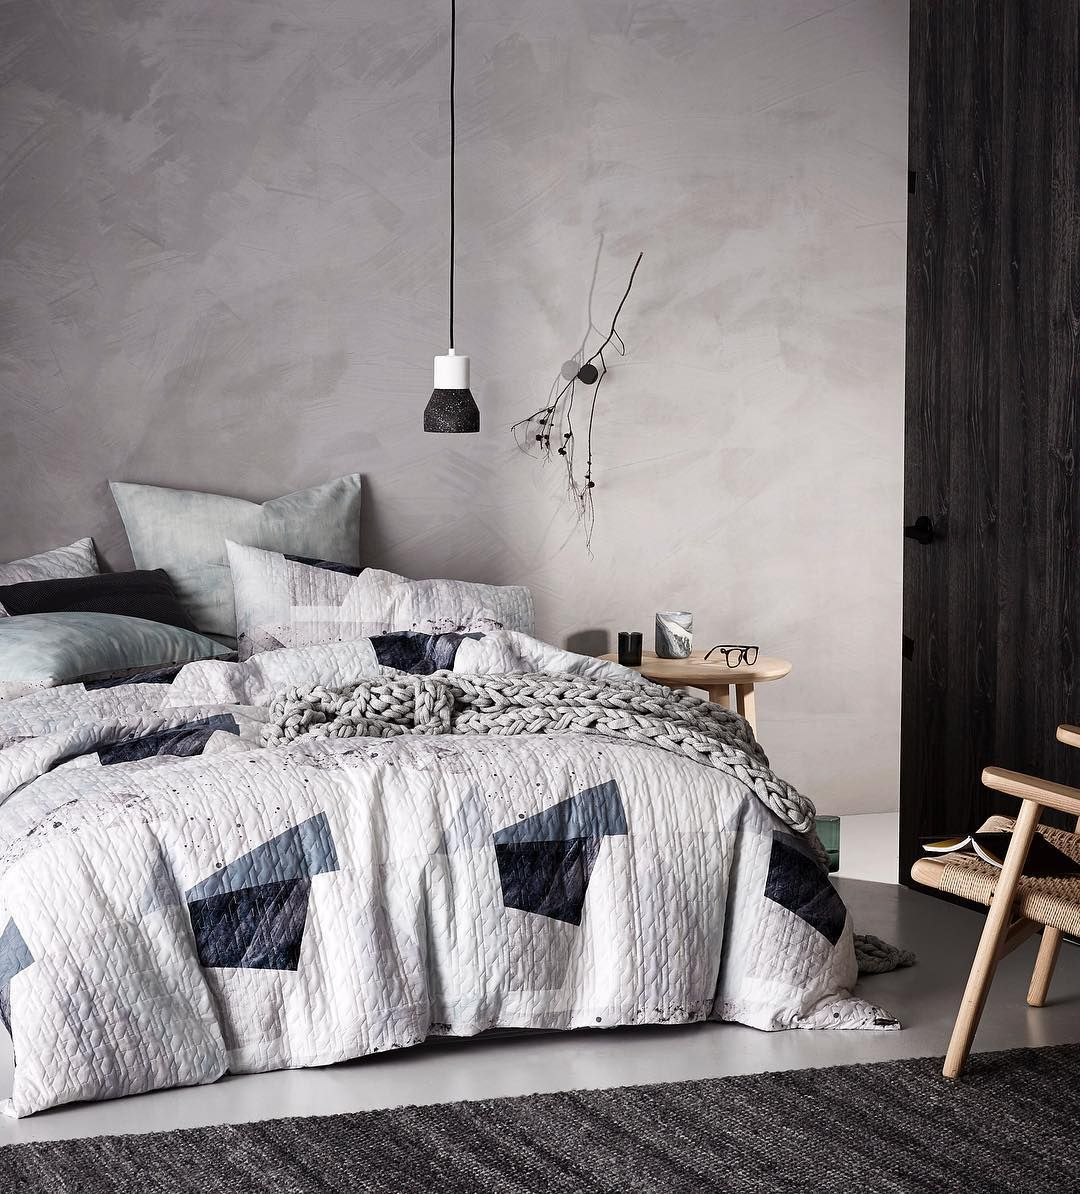 We've made it simple to create a contemporary, urban look in your bedroom. The Morrison quilt cover set combines raw colour and texture. #bedlinen #quiltcover #bedroom #bedroominspo #bedroomstyling #bedroomdecor #bedroomideas #homestyling #homedecor #homeinterior #adairs #homerepublic